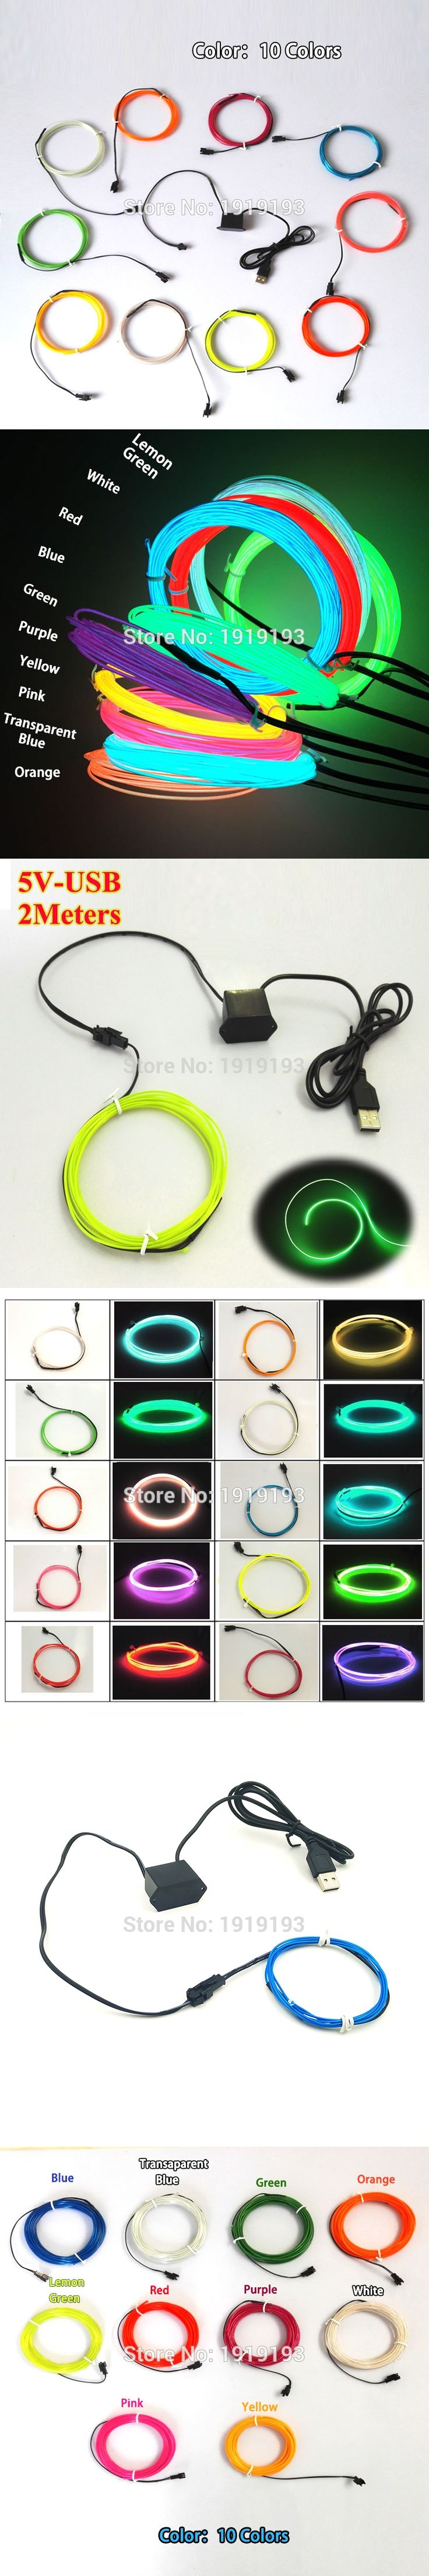 Hot Sales 1.3mm 2Meter Flexible Neon Light  LED Strip EL Wire with USB Controller For Party Festival Wedding Decoration